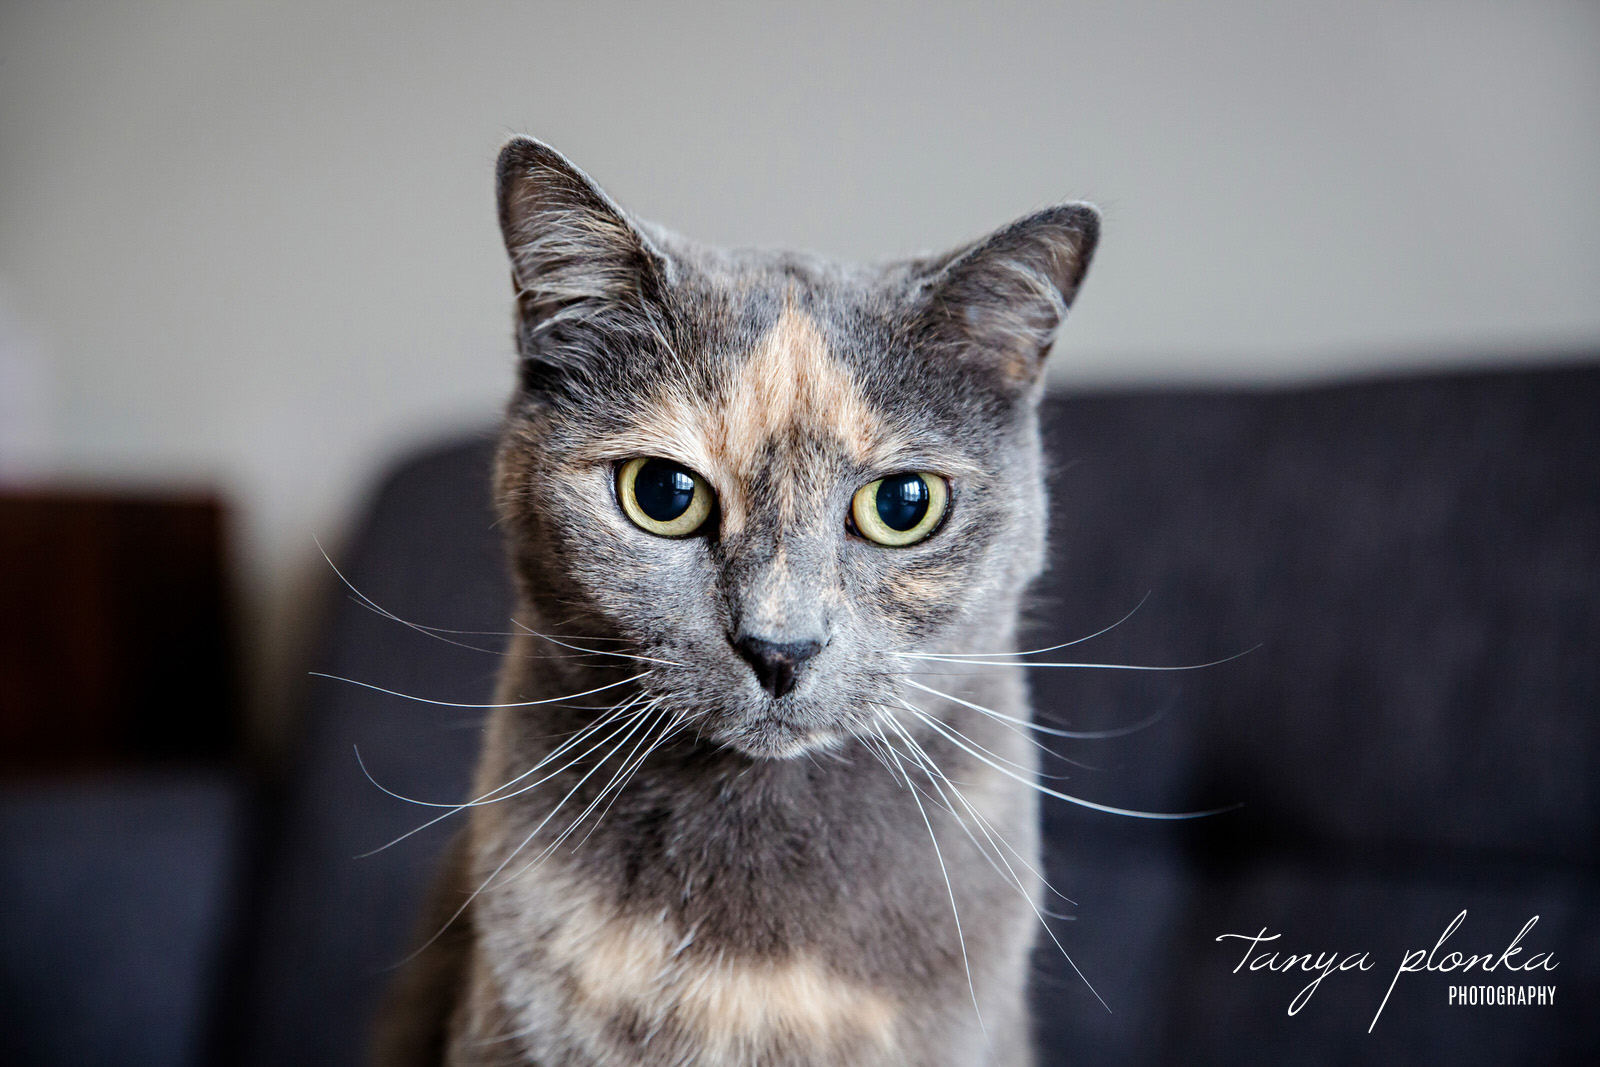 gray and tan cat with big whiskers looking at camera with large eyes